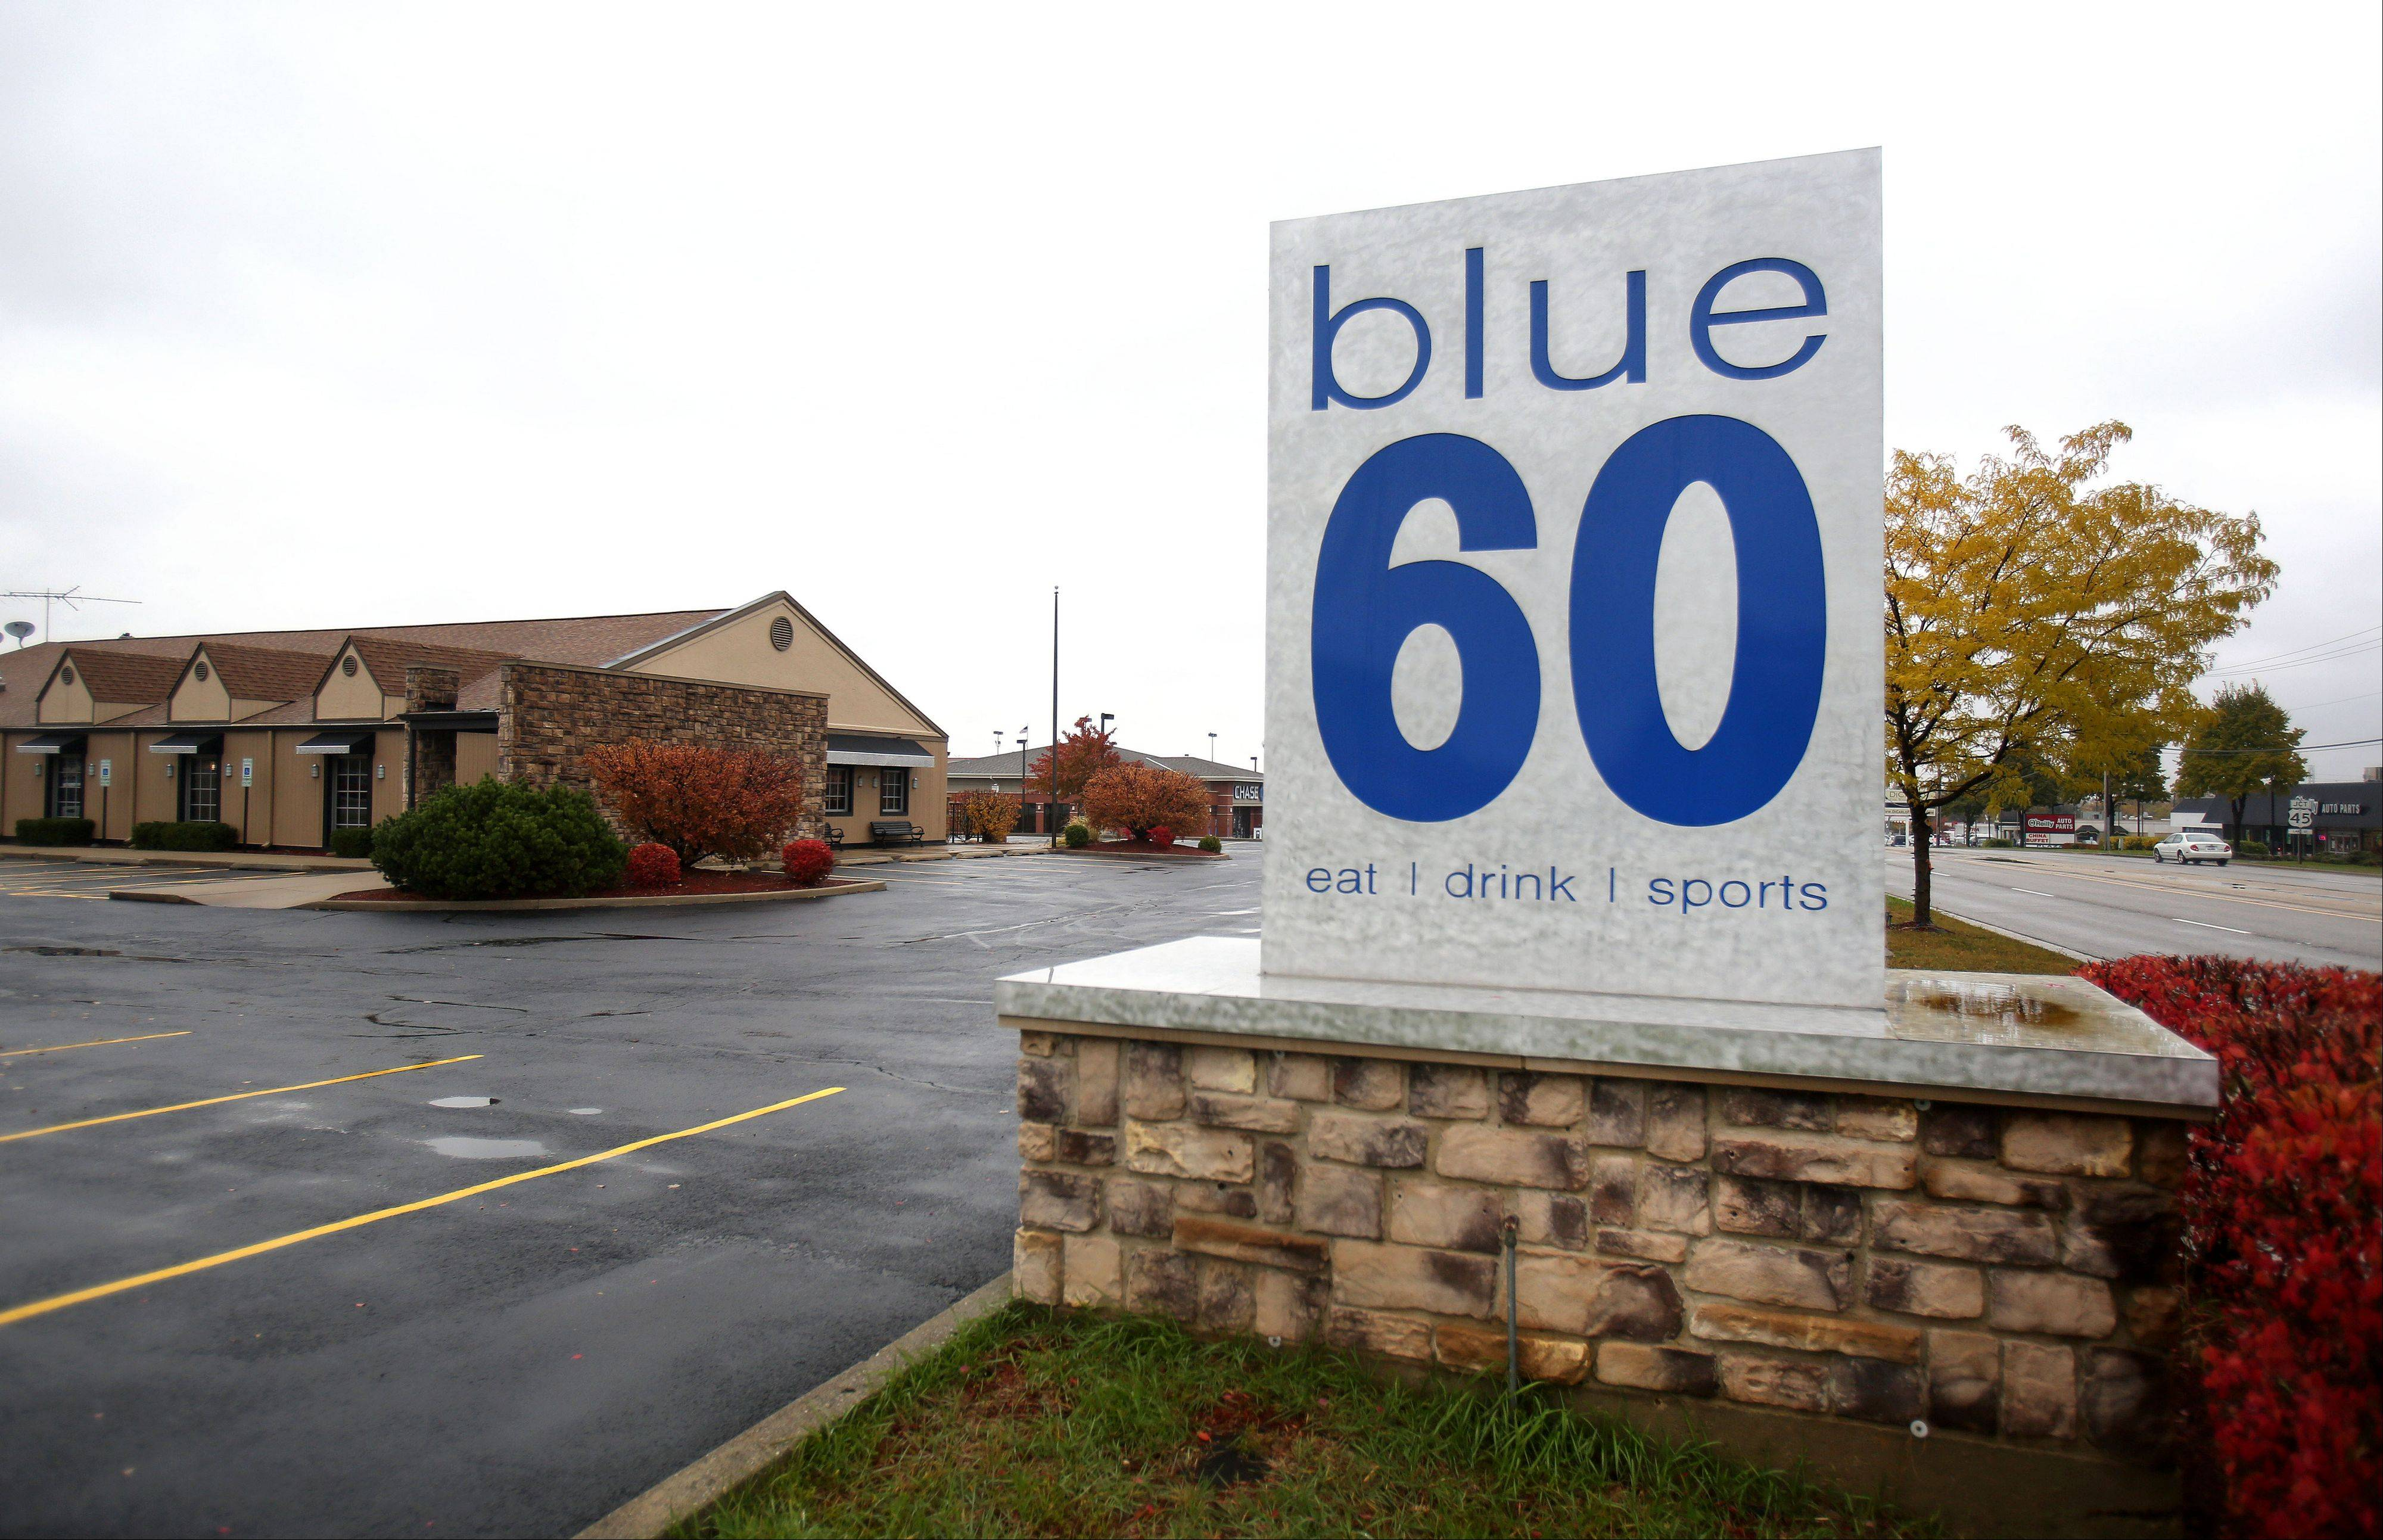 Phil Gilardi, owner of Philly G's in Vernon Hills, is reopening Blue 60 in Mundelein as Tavern on 60. He hopes to end a string of unsuccessful ventures at the restaurant site.